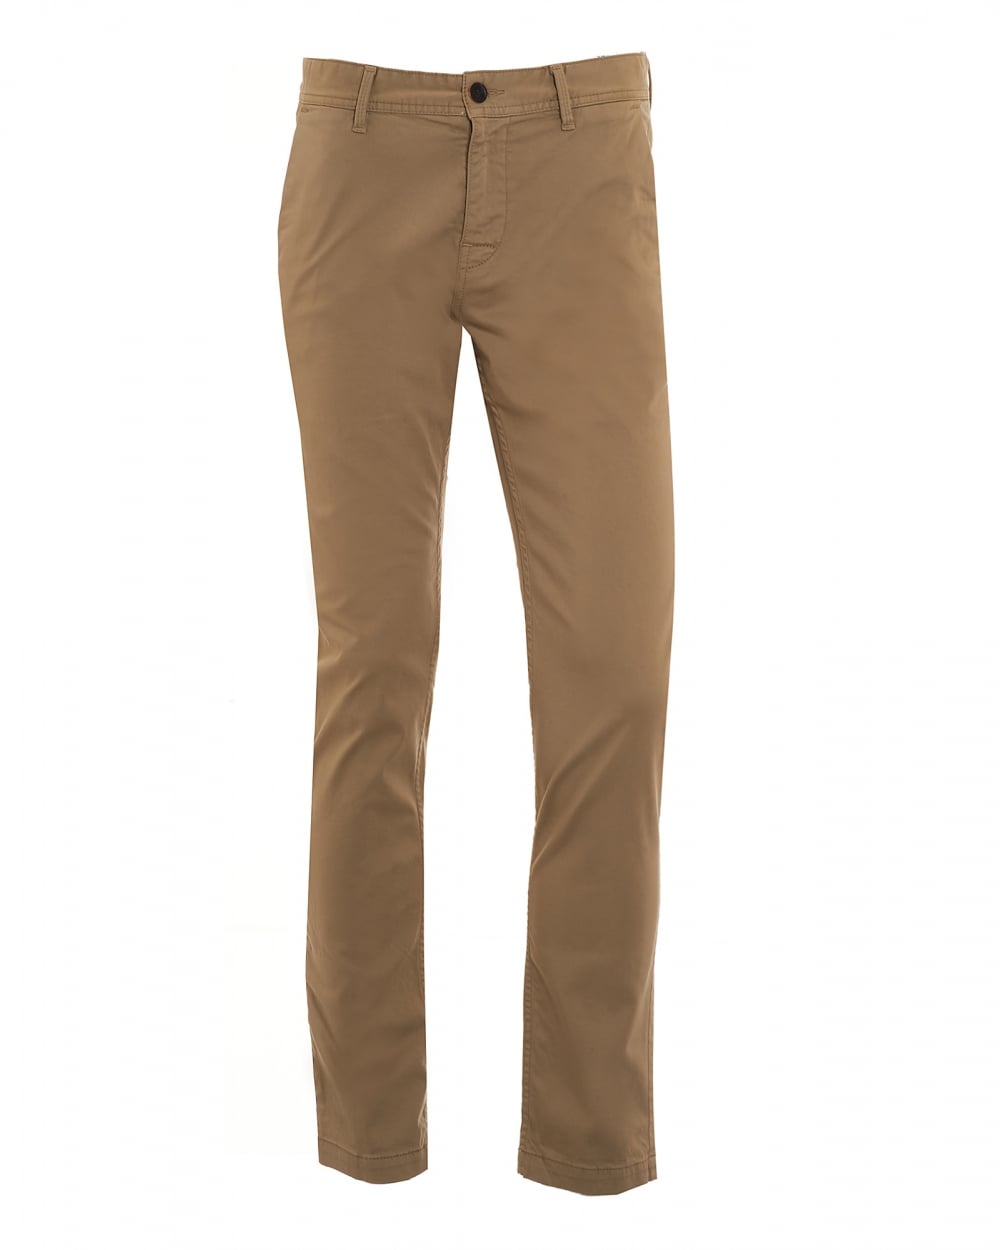 BOSS trousers mens schino-slim1-d chino, beige slim fit trouser OWEKPMW